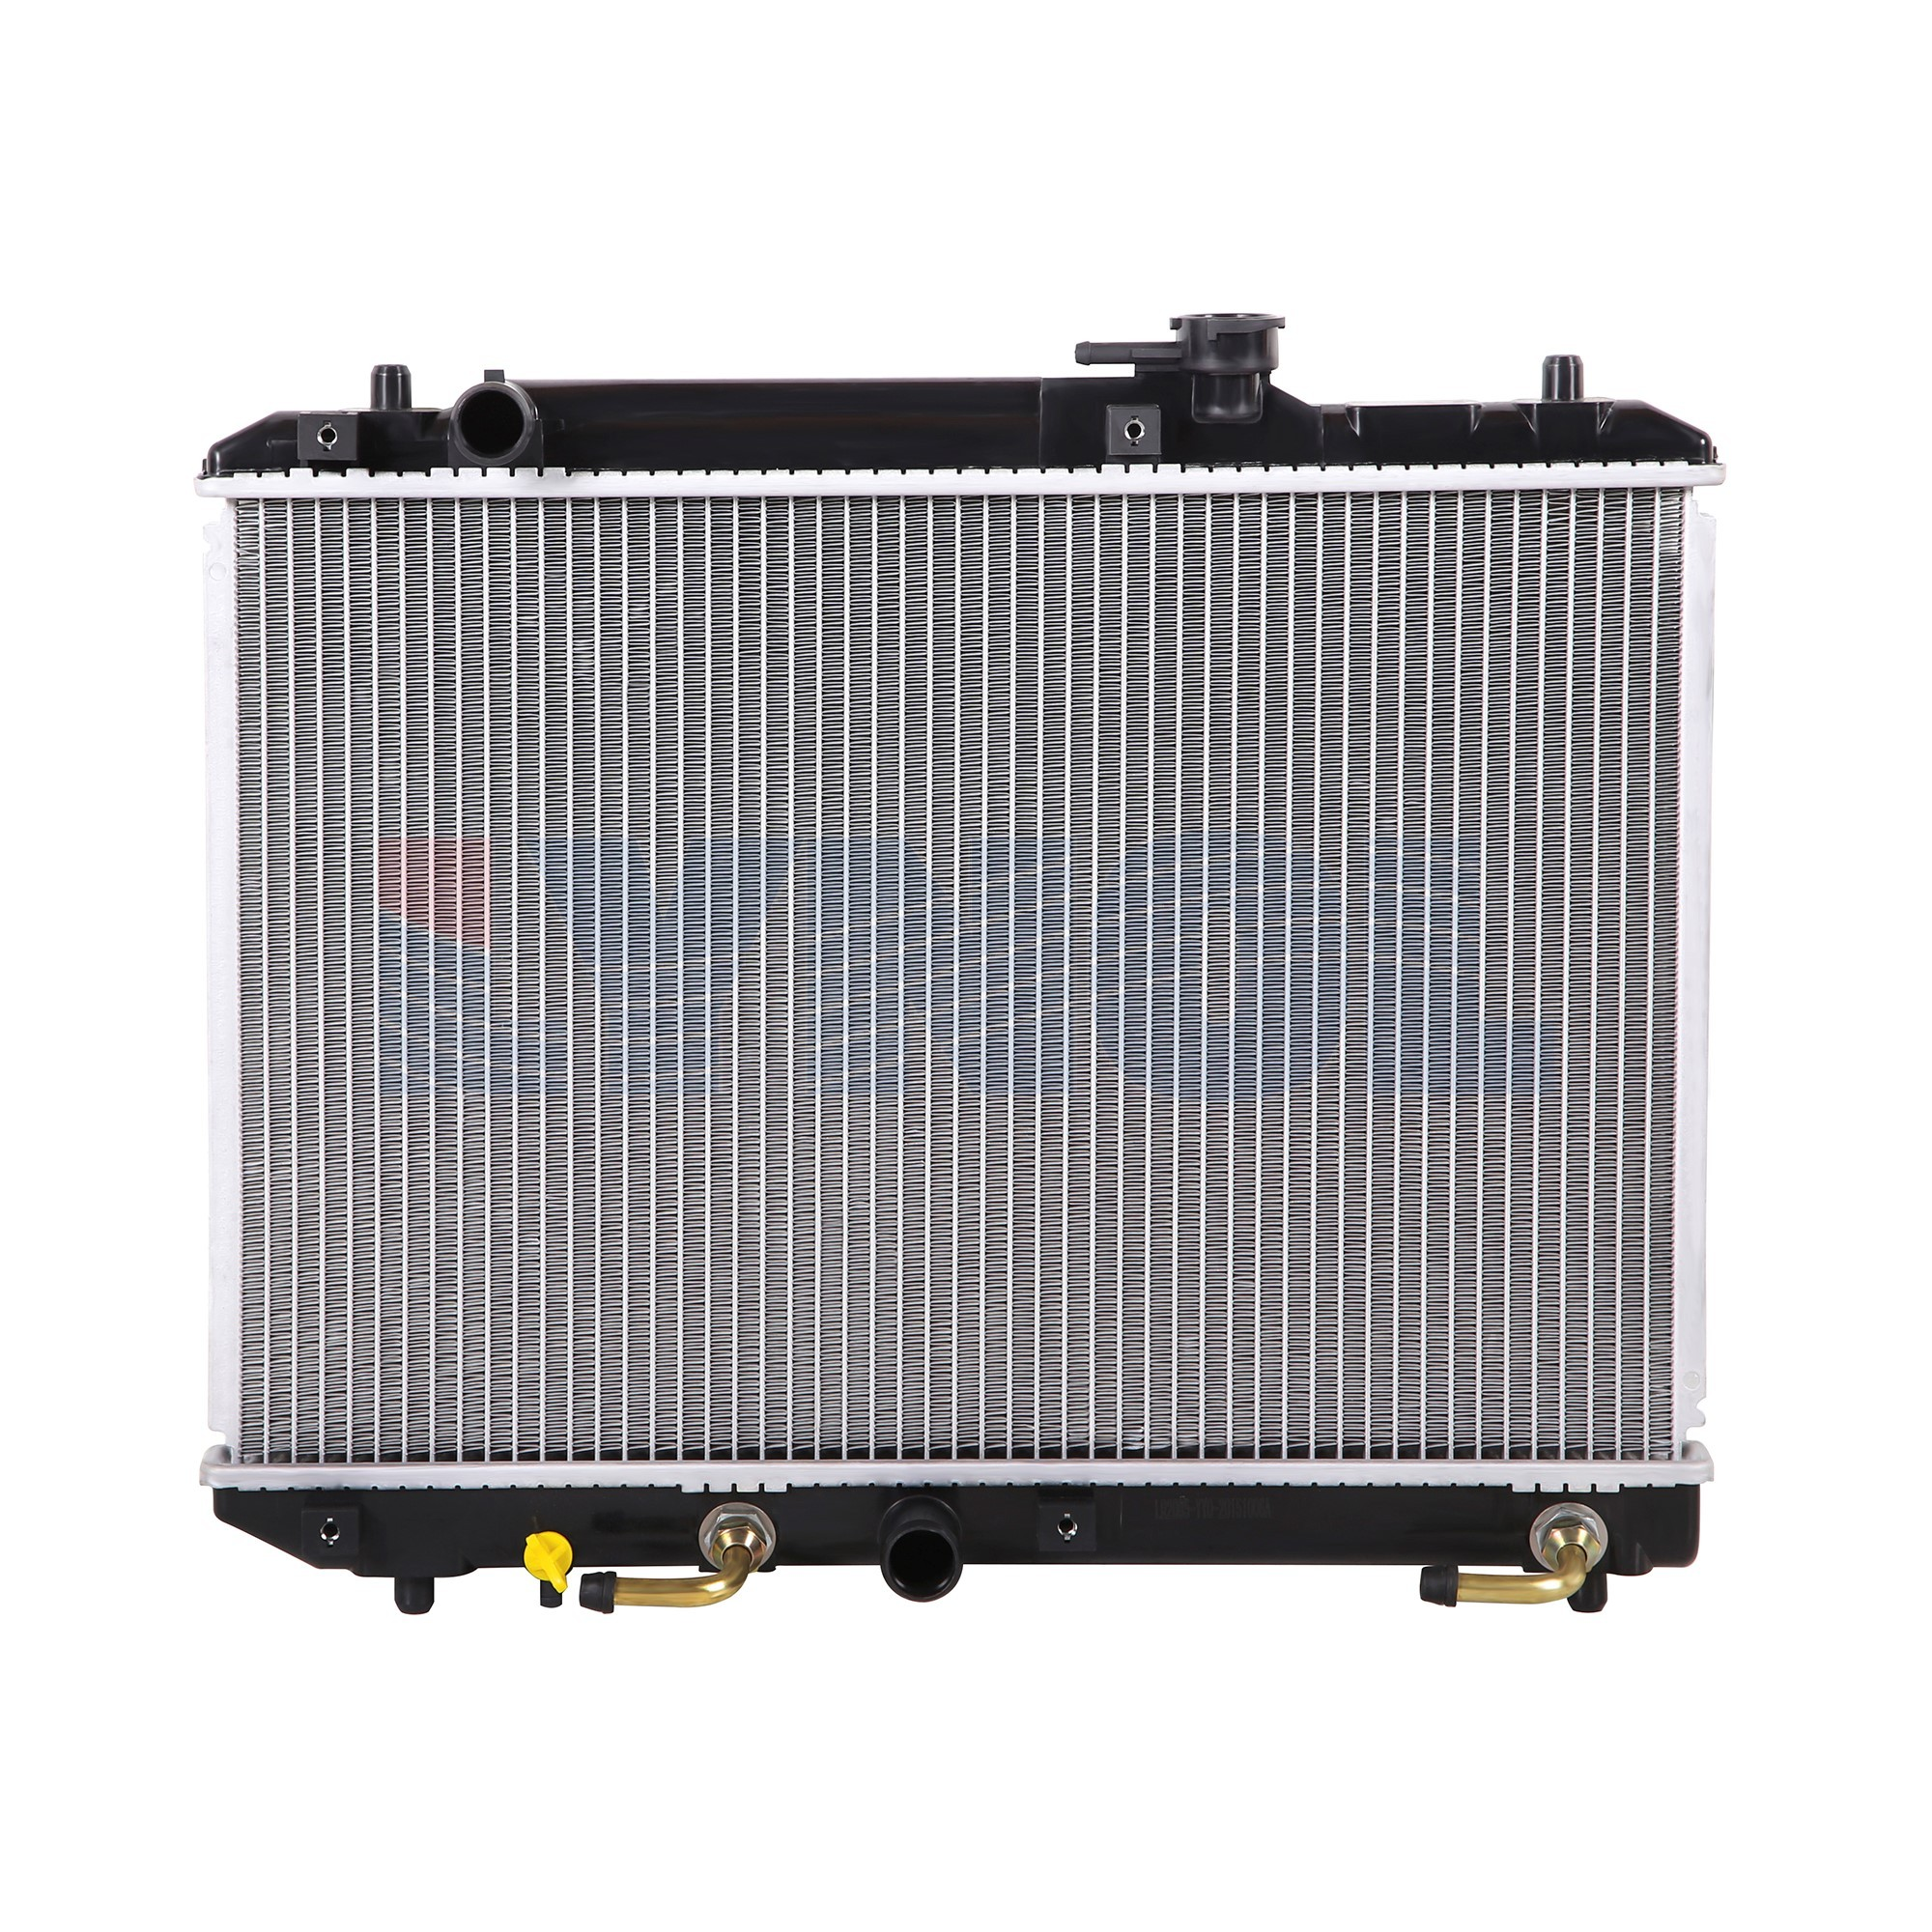 LR2085 - RADIATOR  - Radiator for 95-01 Suzuki Esteem, 1.6L l4